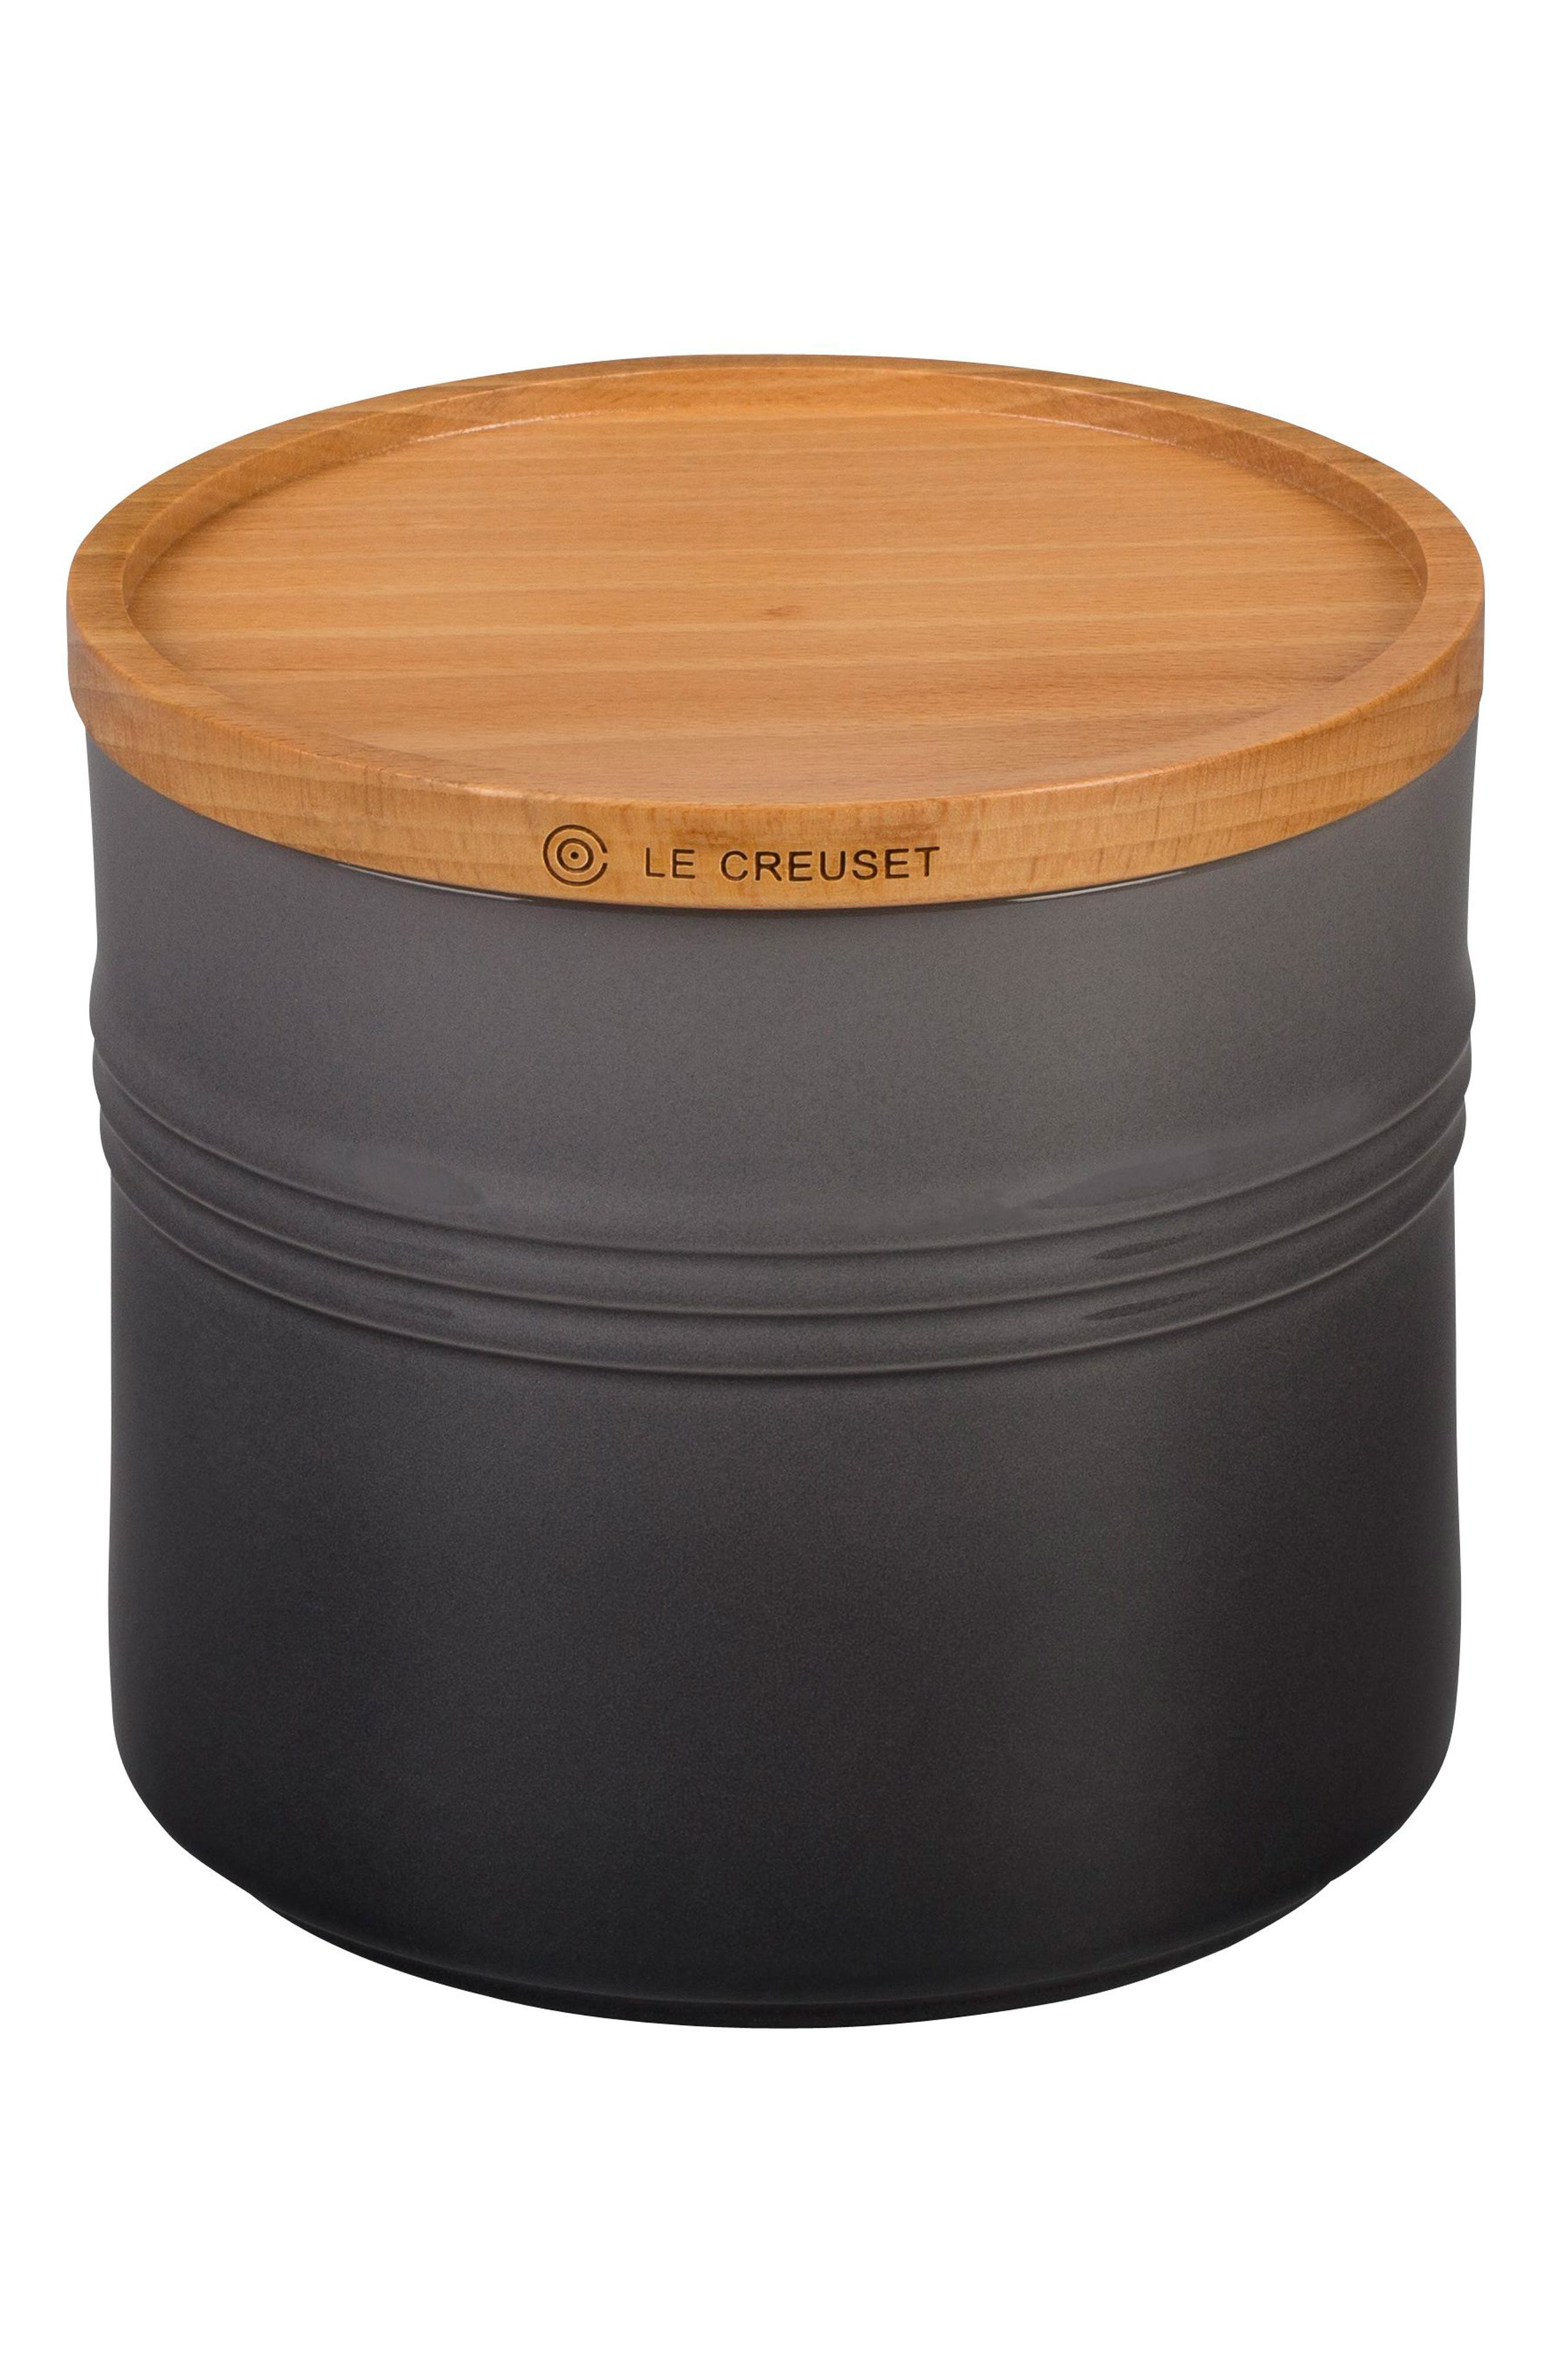 Glazed Stoneware 1 1/2 Quart Storage Canister with Wooden Lid,                             Main thumbnail 1, color,                             OYSTER